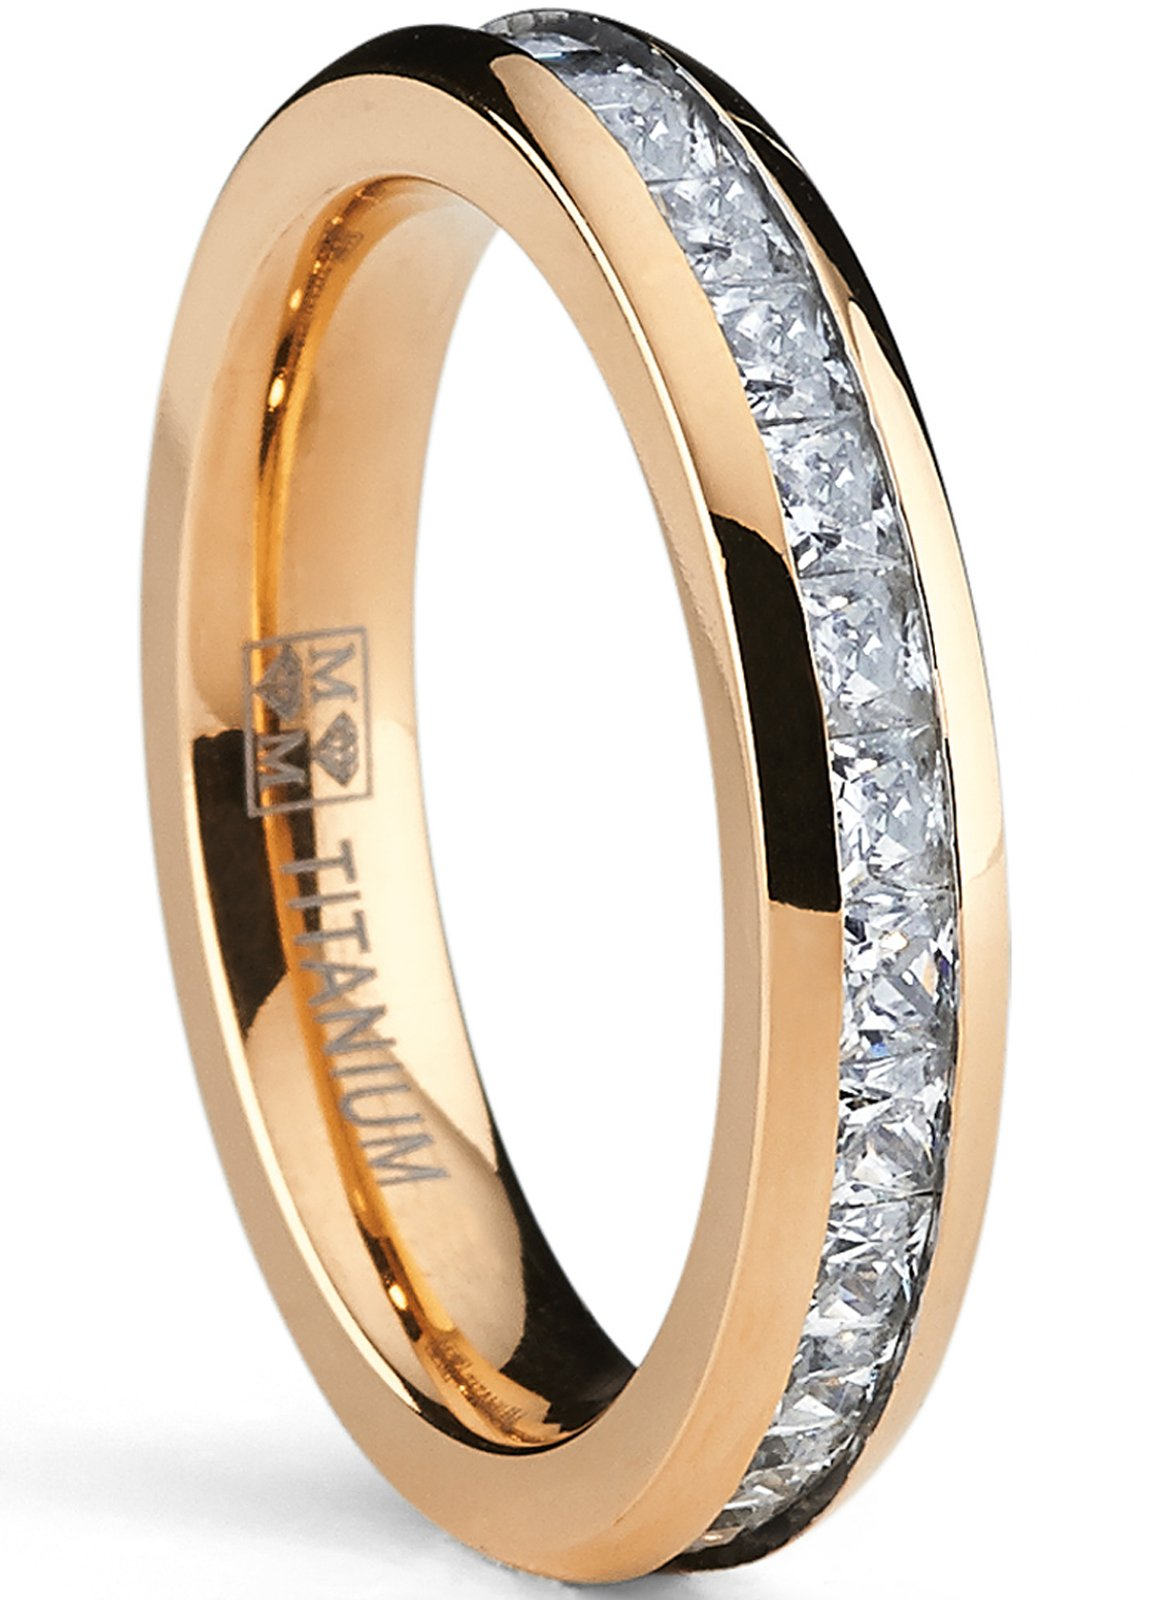 Metal Masters Co. 4MM Rose Plated Princess Cut Women's Eternity Titanium Ring Wedding Band with CZ Size 7.5